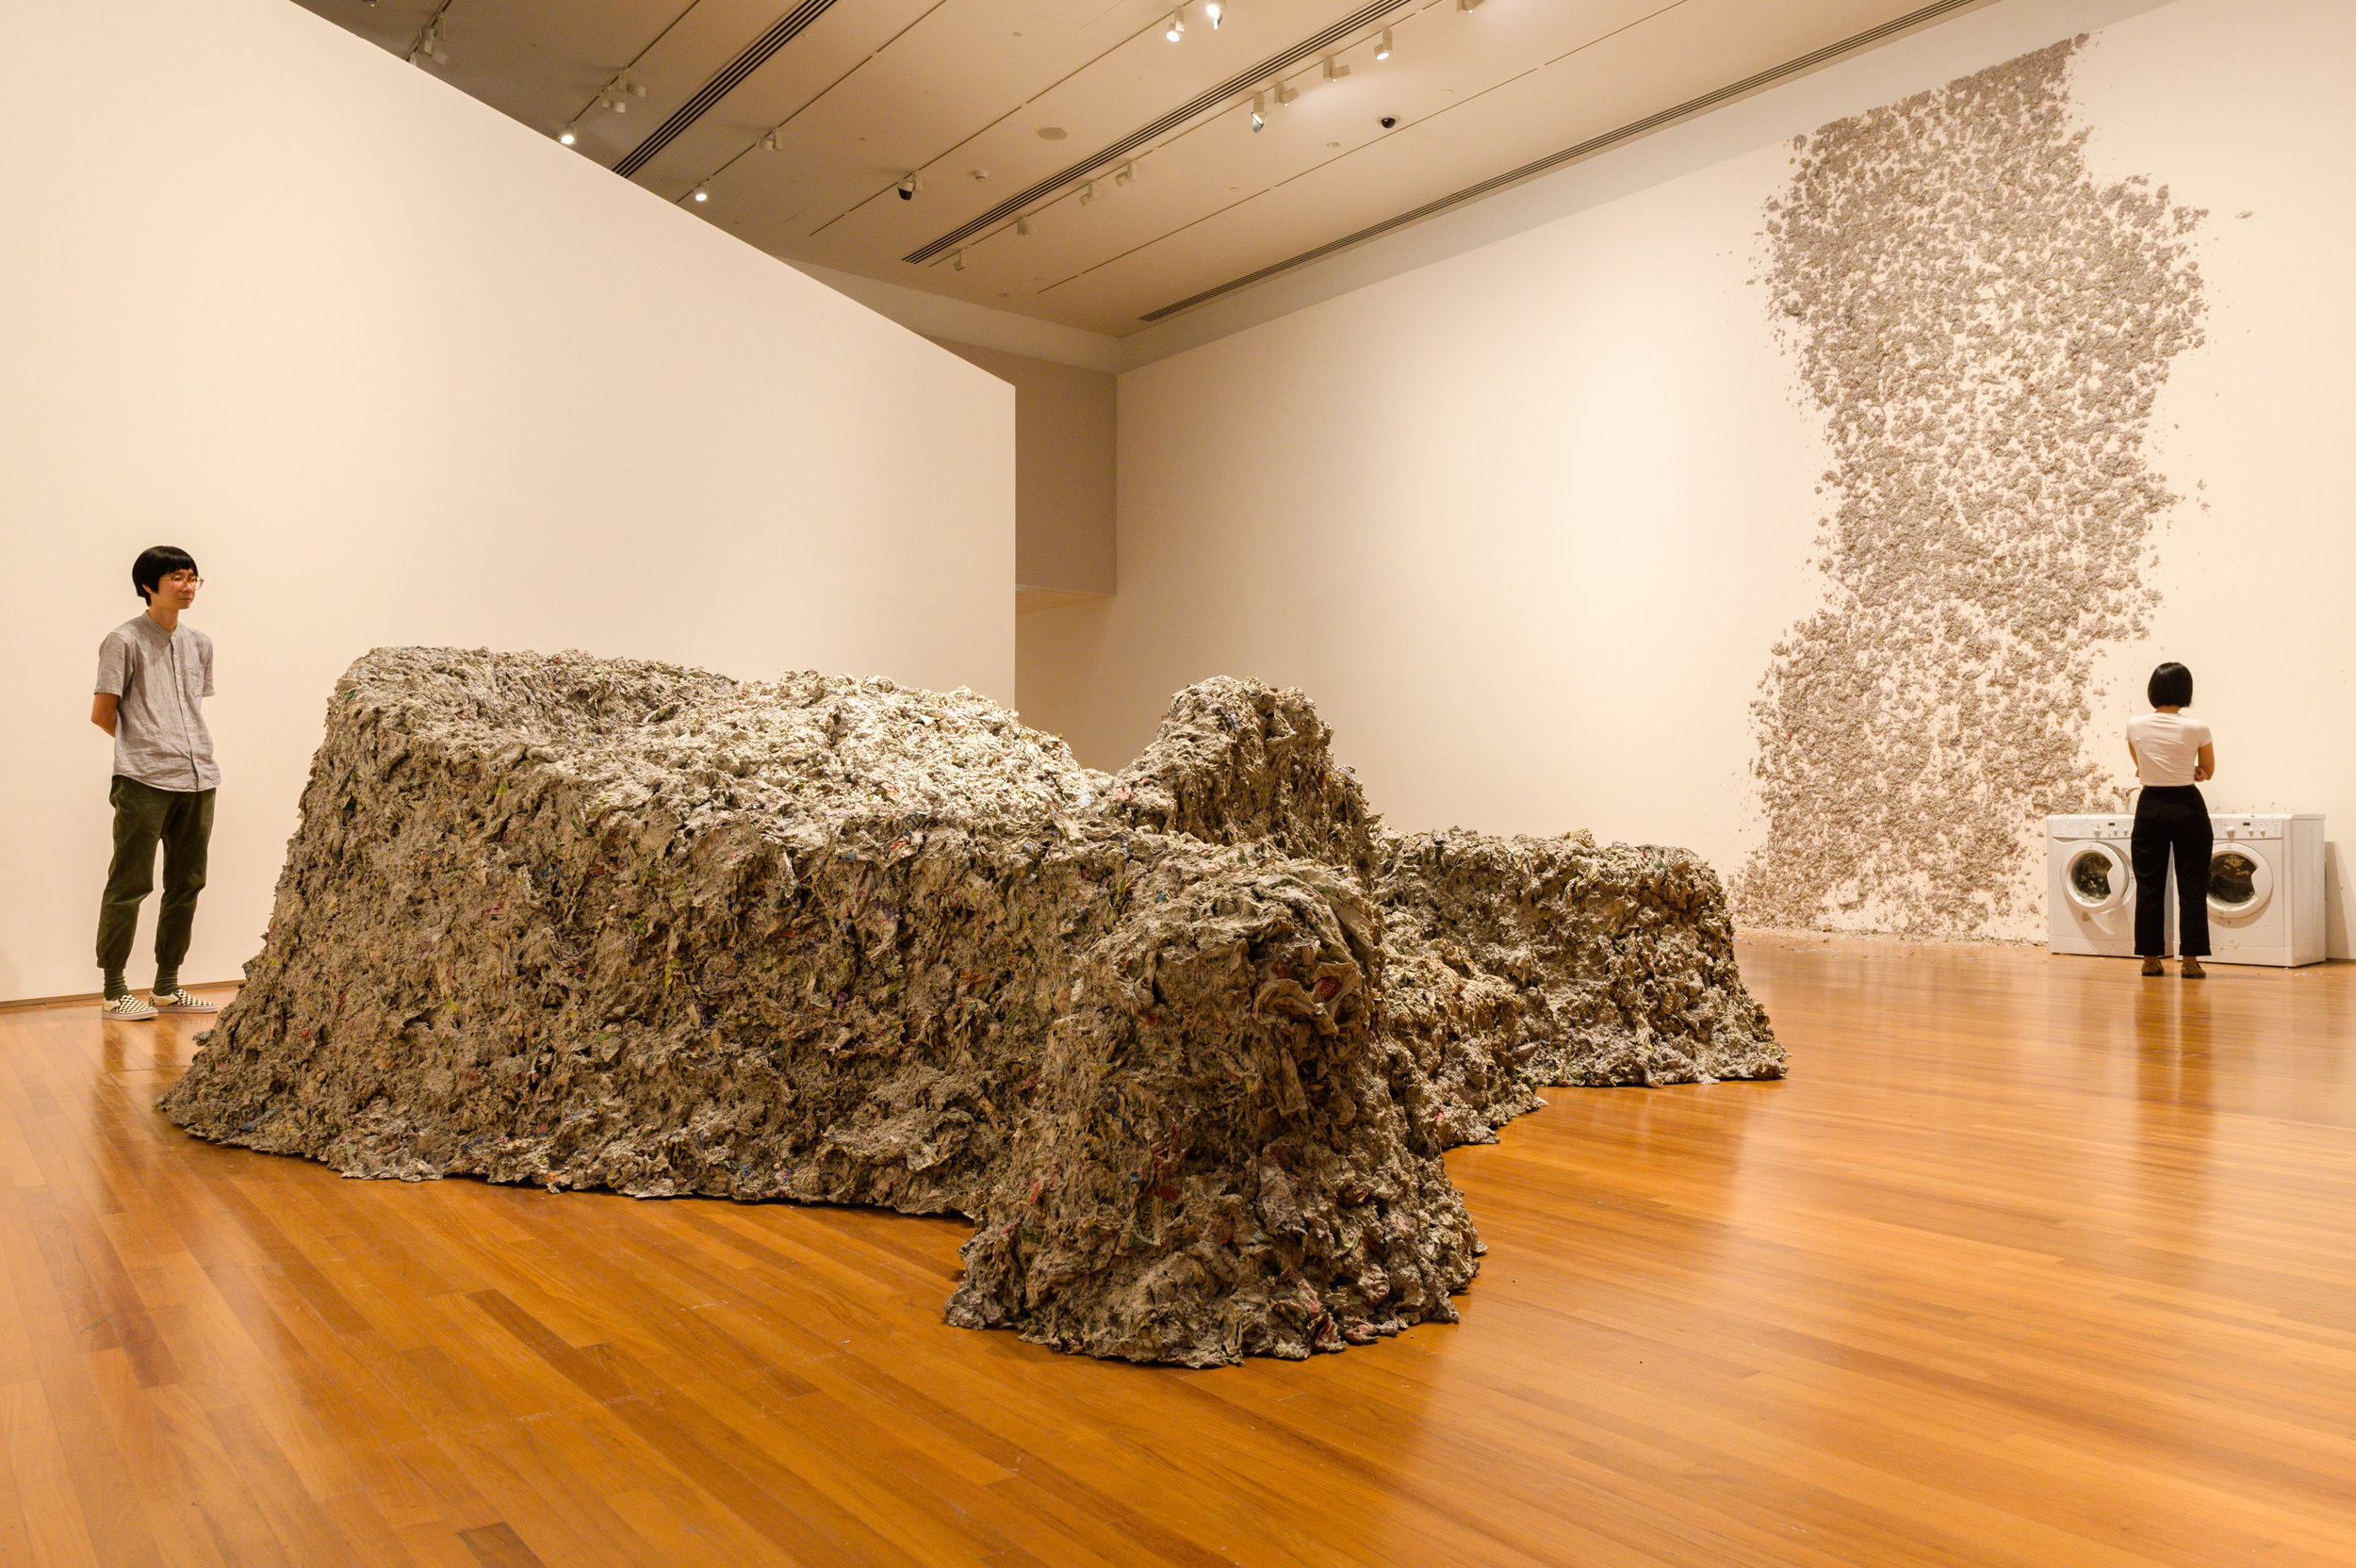 3 awakening unheard voices: Alex burchmore,  singapore    Huang Yong Ping,  Reptiles , 1989/2013, installation view, 'Awakenings', National Gallery Singapore, 2019; paper pulp, iron and washing machine, 495 x 1300 x 900cm; M+, Hong Kong; image courtesy National Gallery Singapore